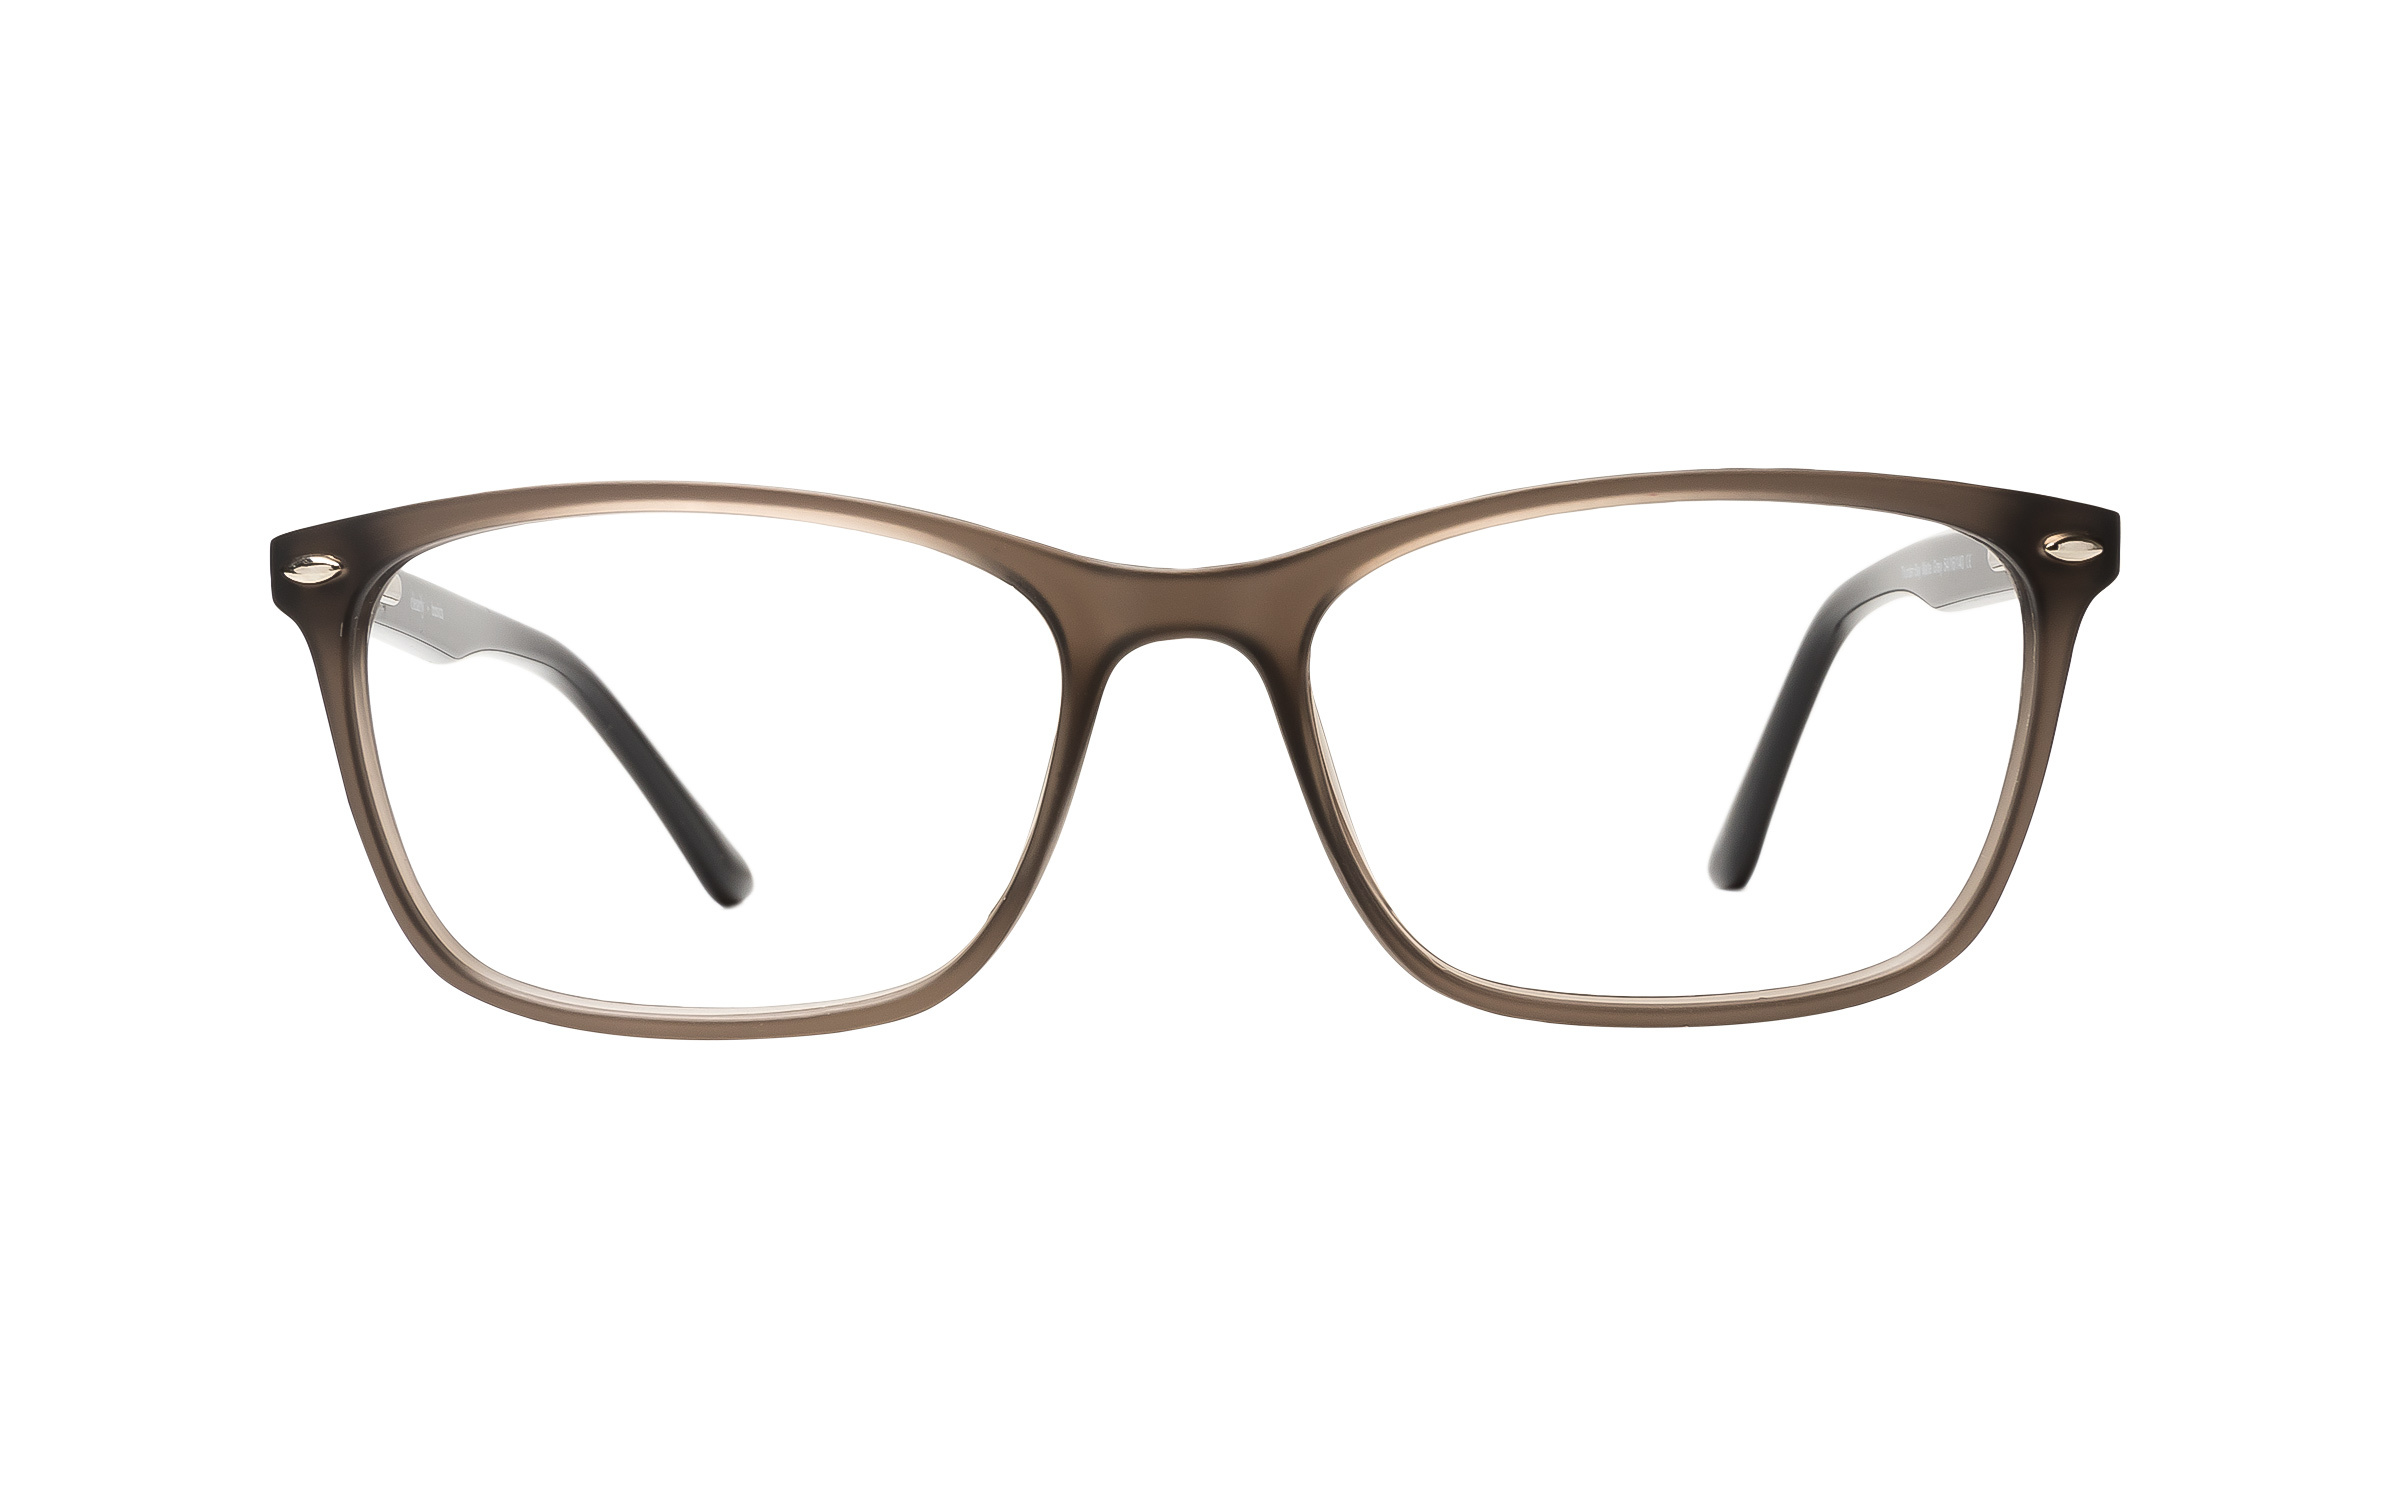 Clearly Basics Thunder Bay (54) Eyeglasses and Frame in Matte Grey - Online